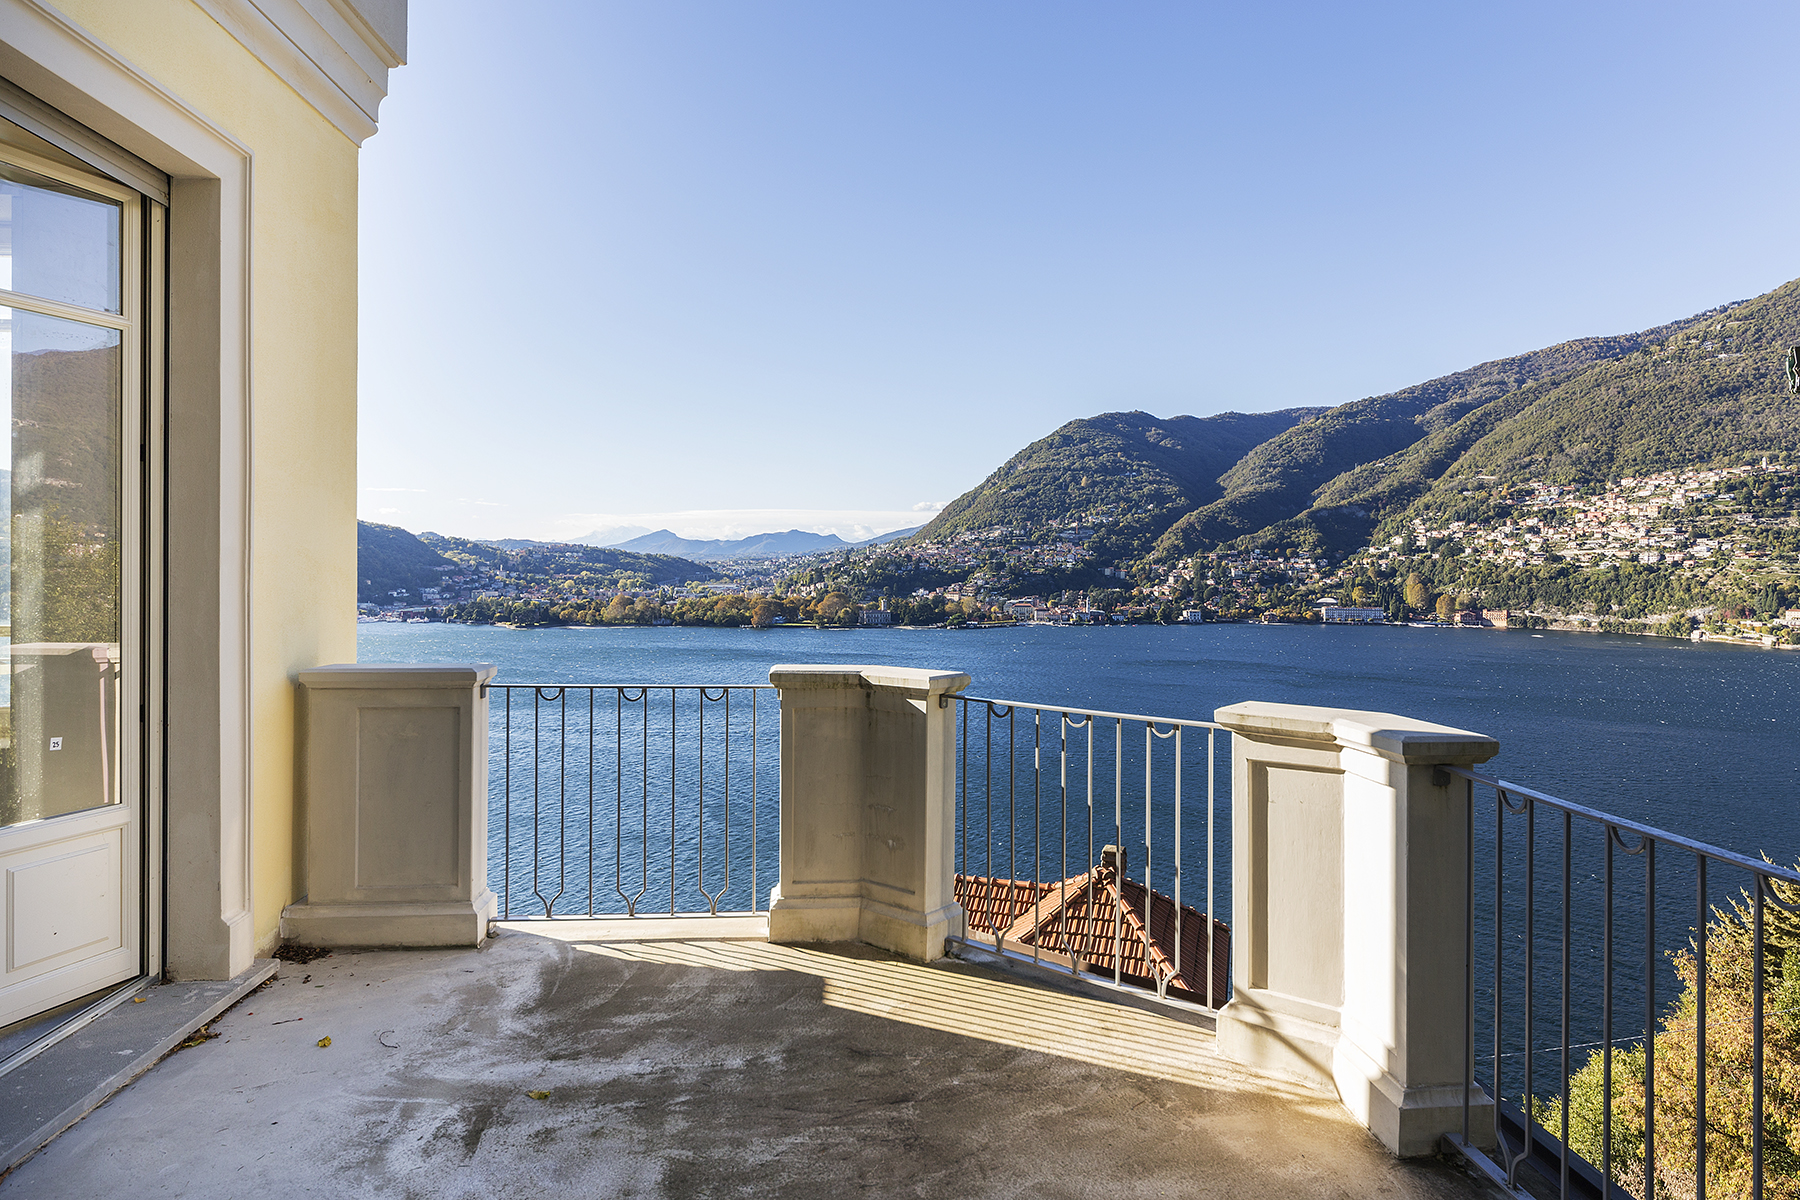 Apartments for Sale at Apartment with private garden in historical villa Blevio, Como Italy